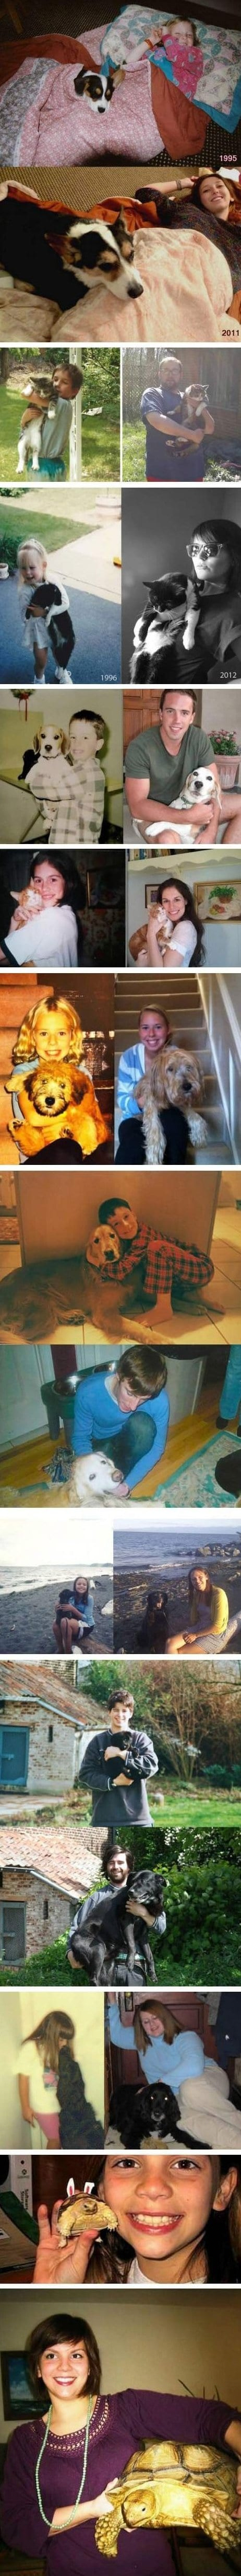 meme-lol-owners-and-their-pets-many-years-later